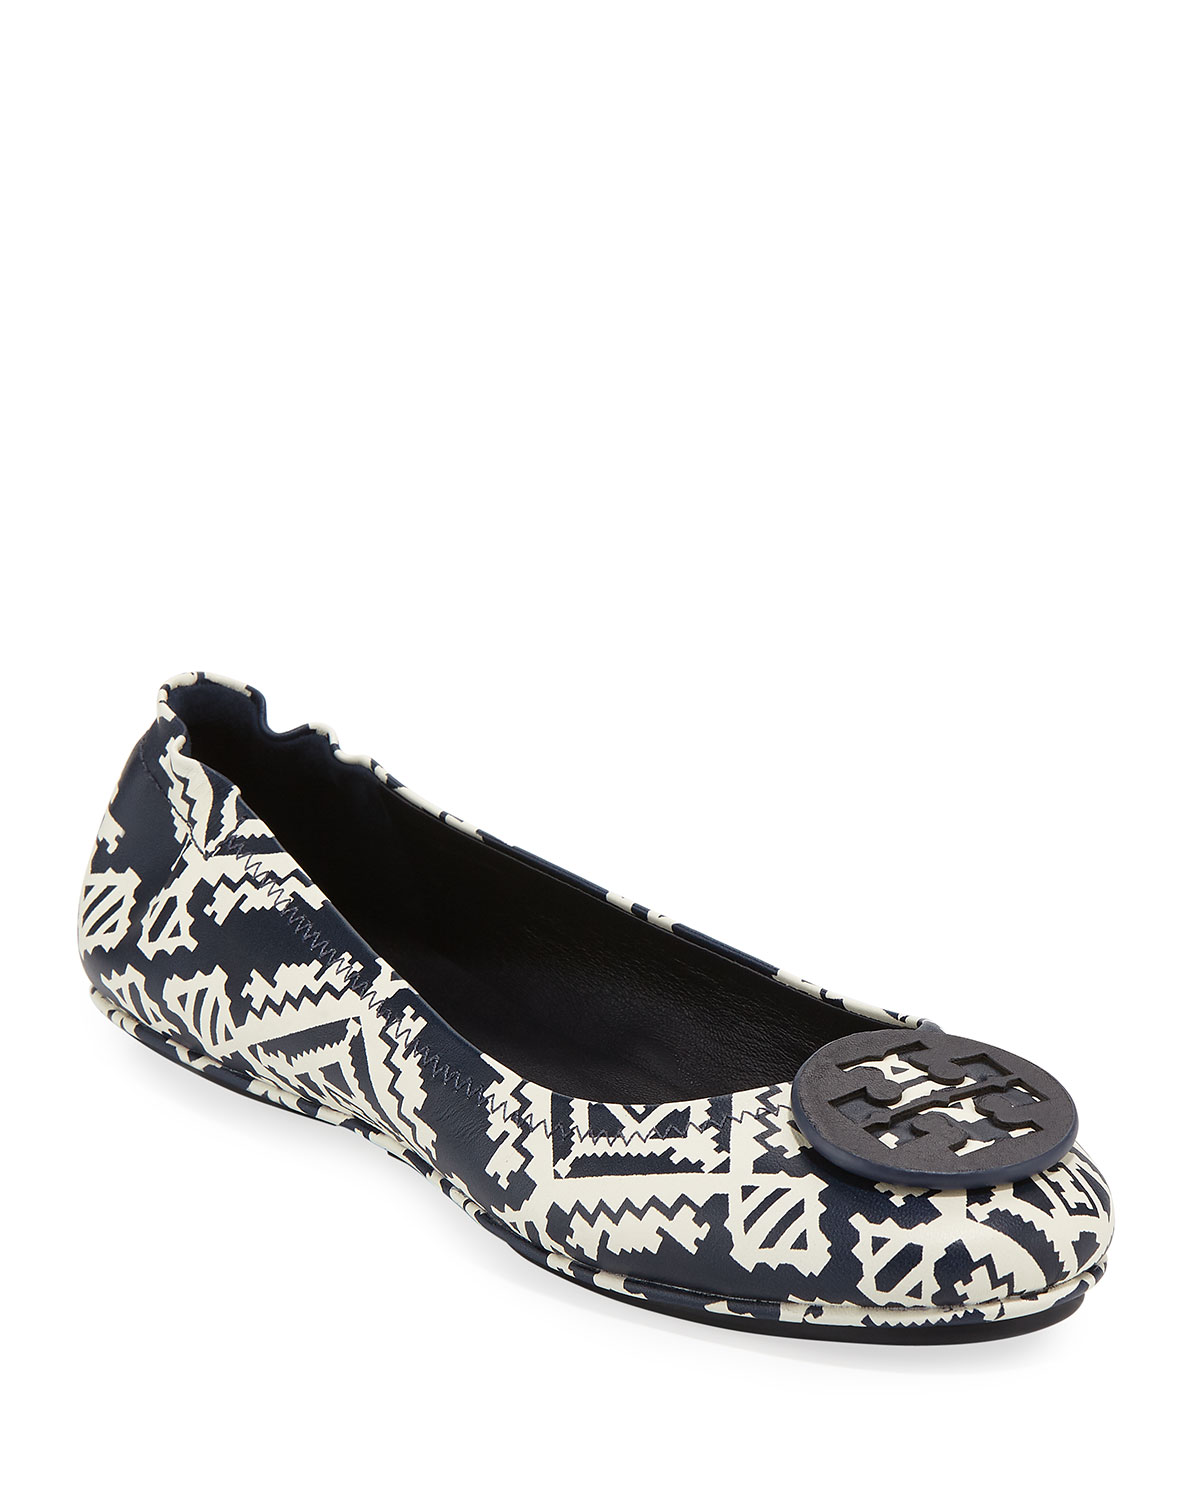 76a69efb743 Tory Burch Minnie Floral Travel Logo Ballet Flats